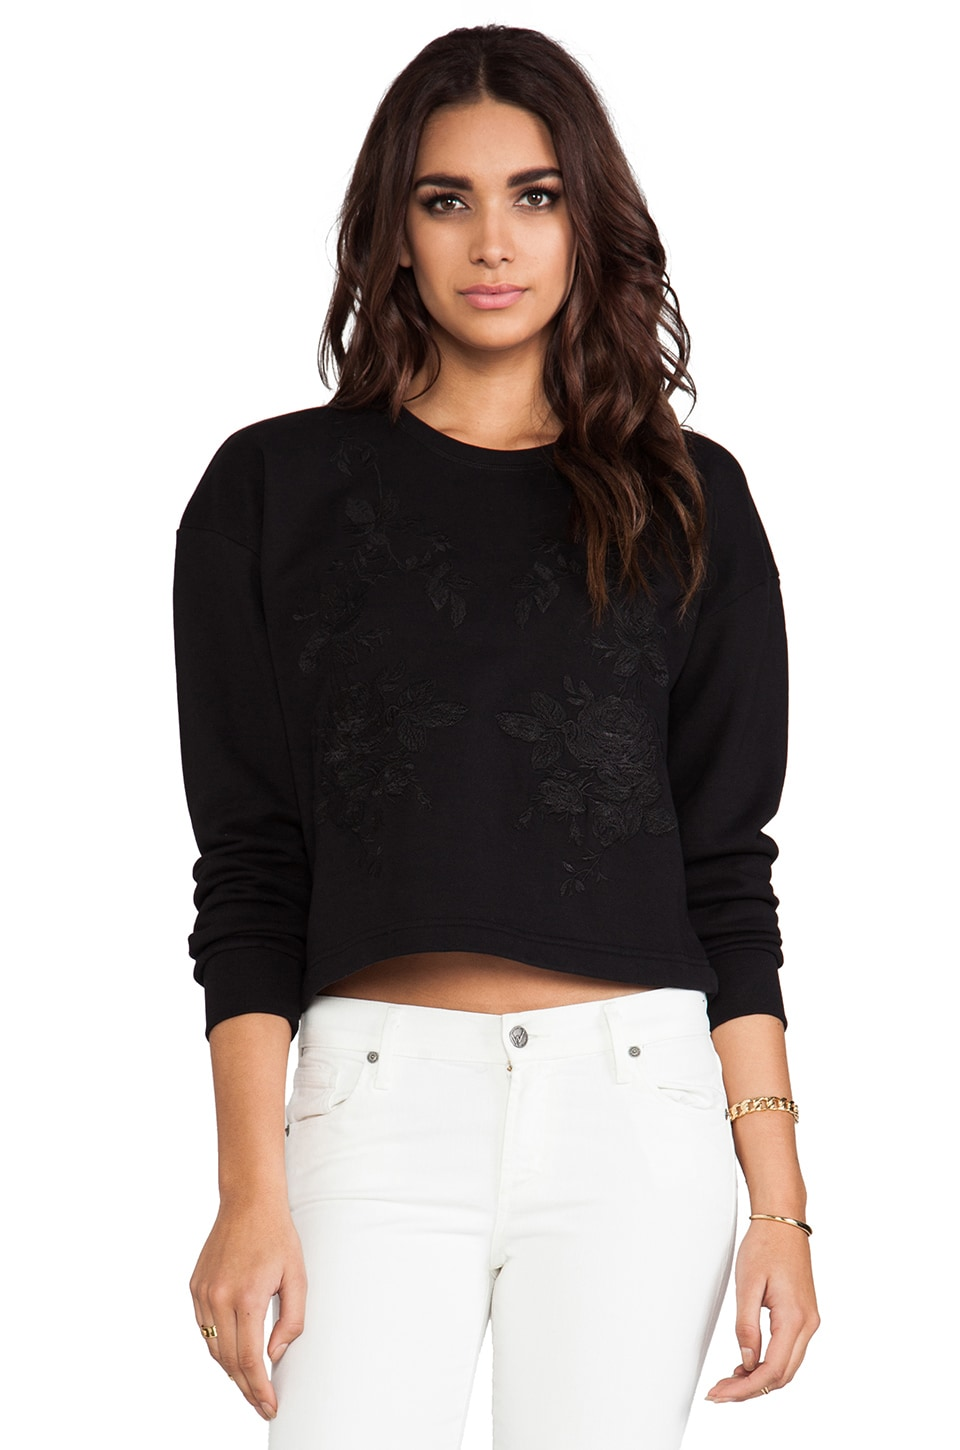 McQ Alexander McQueen Embroidered Sweatshirt in Black